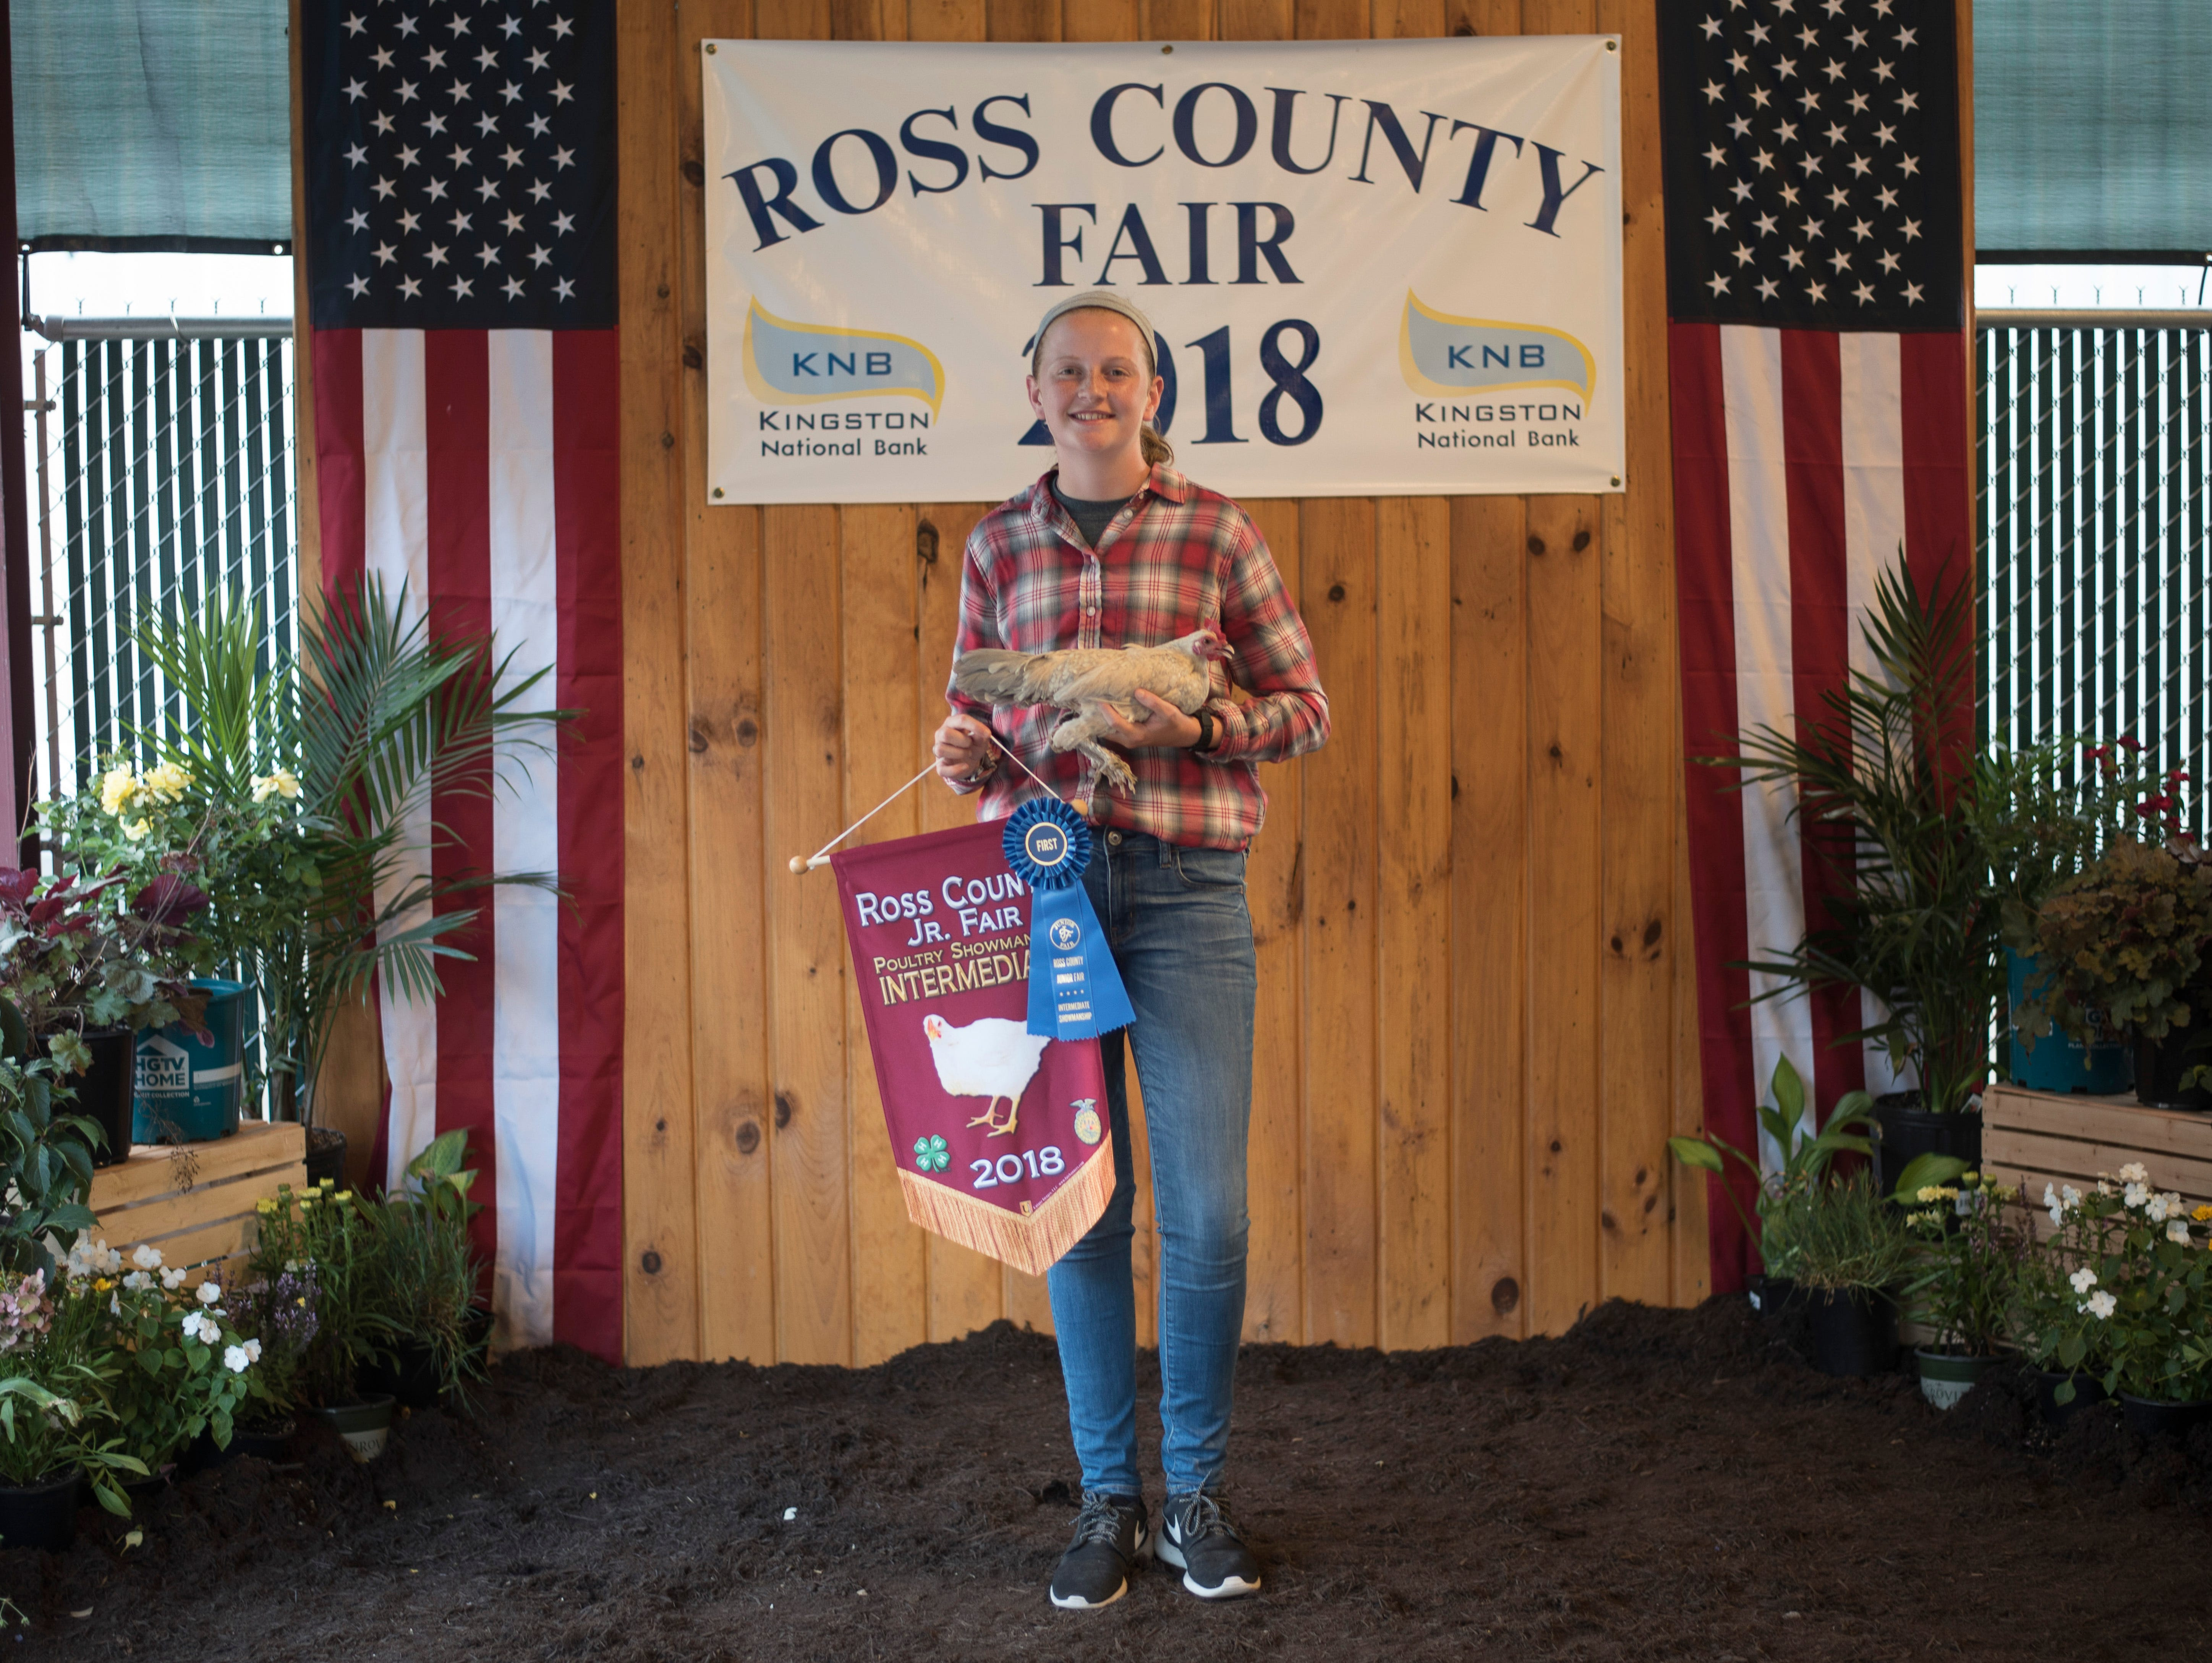 Highlights and portraits of the of the 2018 Jr. Fair Poultry Production and Fancy Poultry judging and showmanship contest. Claire Smith, 15, poses after receiving Poultry Showman Intermediate at the 2018 Ross County Fair on Monday, August 6.